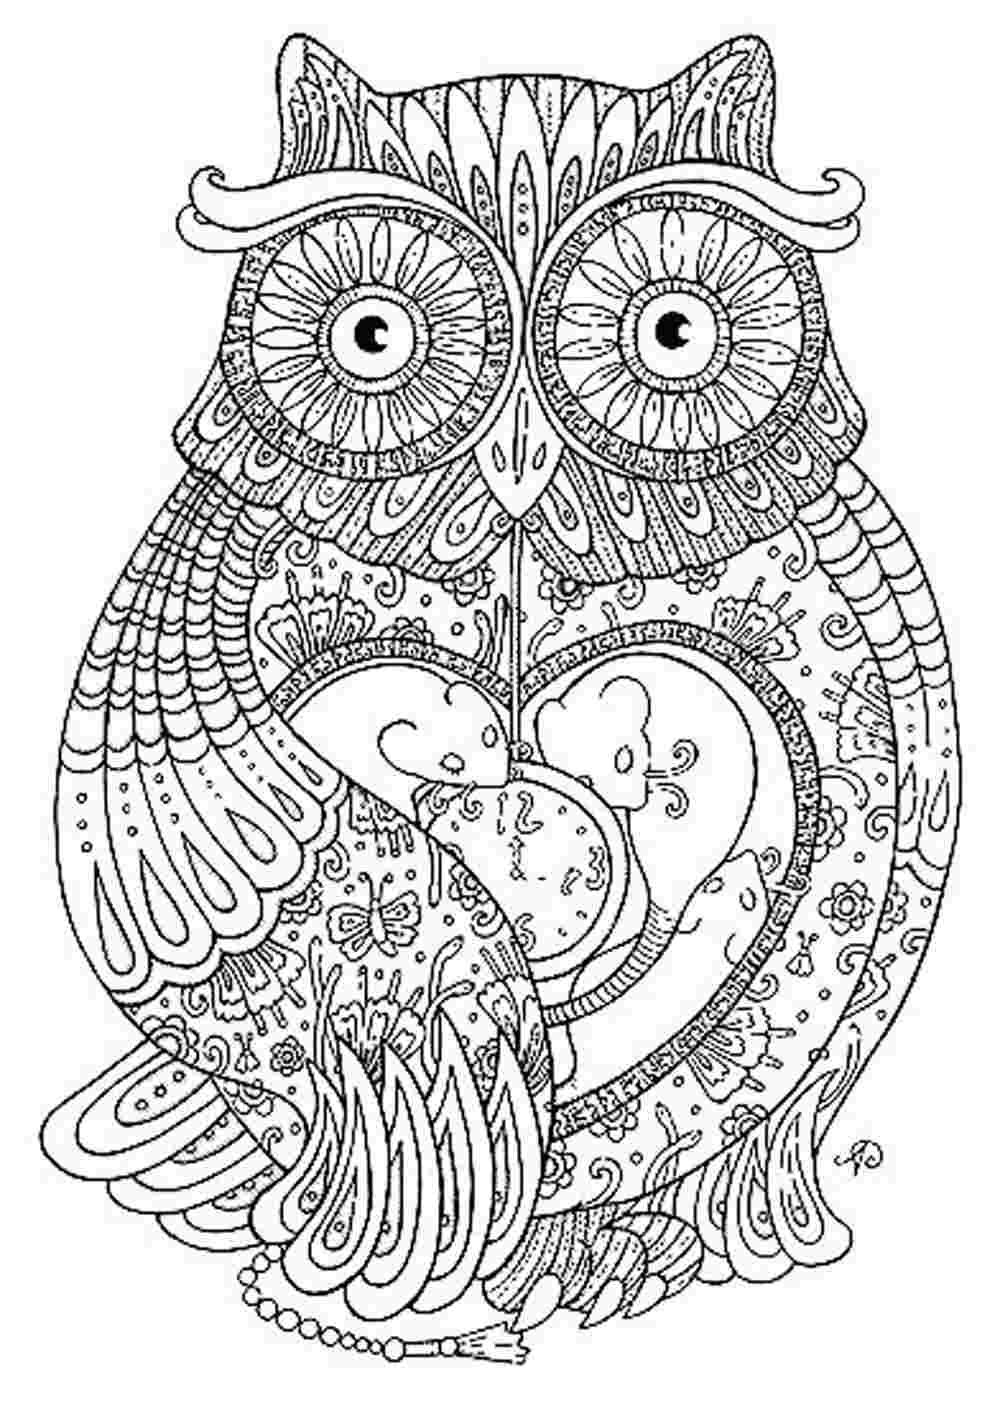 adult coloring pages owl google search mandala and animals pinterest coloring pages. Black Bedroom Furniture Sets. Home Design Ideas